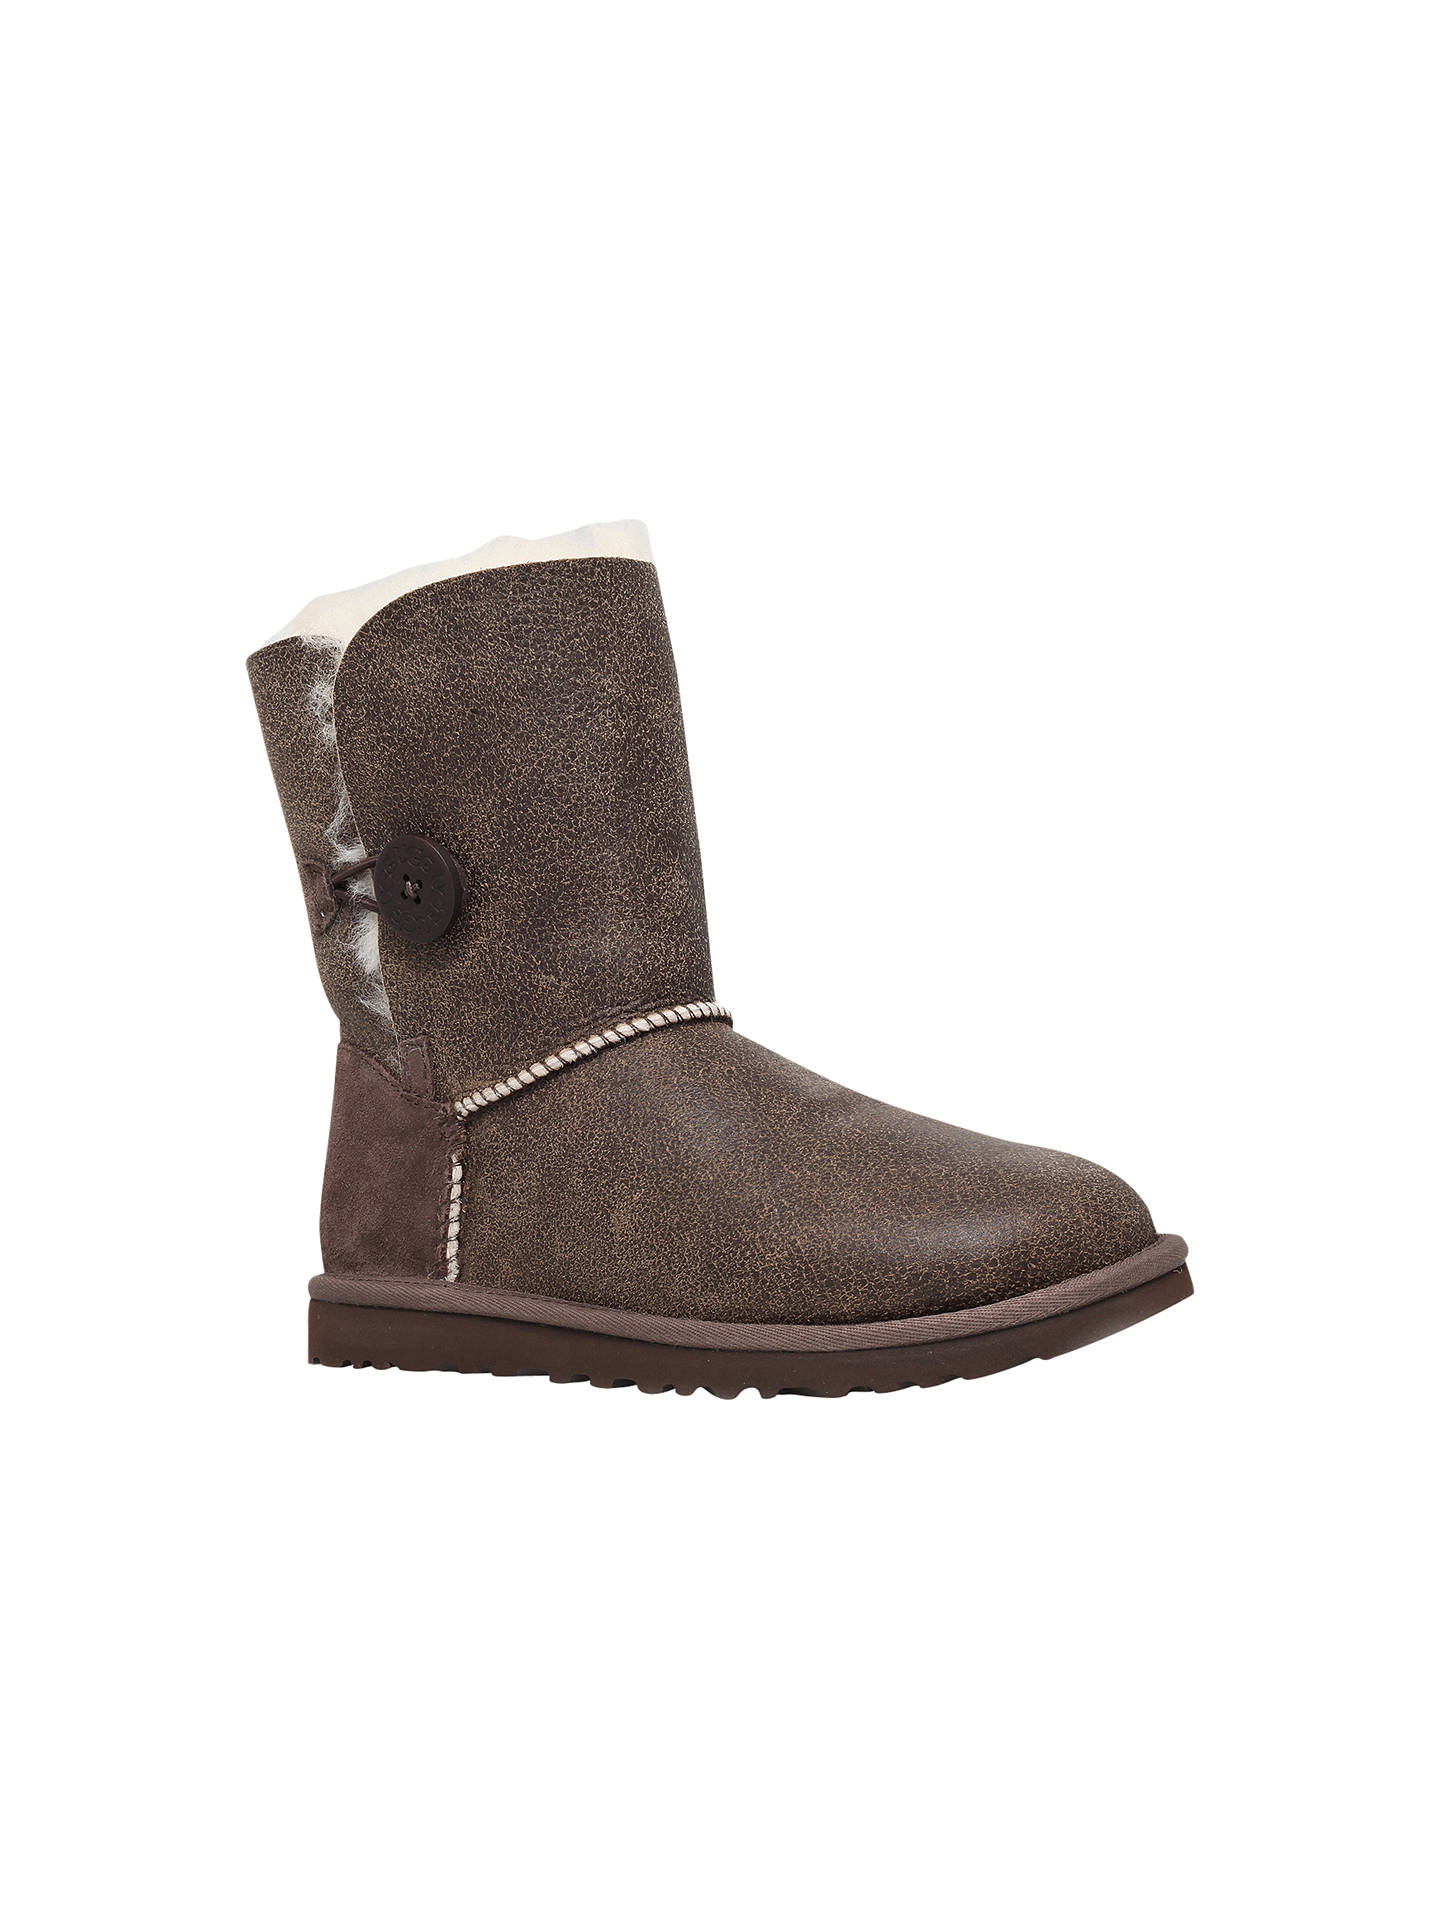 a463f6599ee UGG Bailey Button Bomber Boots, Chocolate at John Lewis & Partners